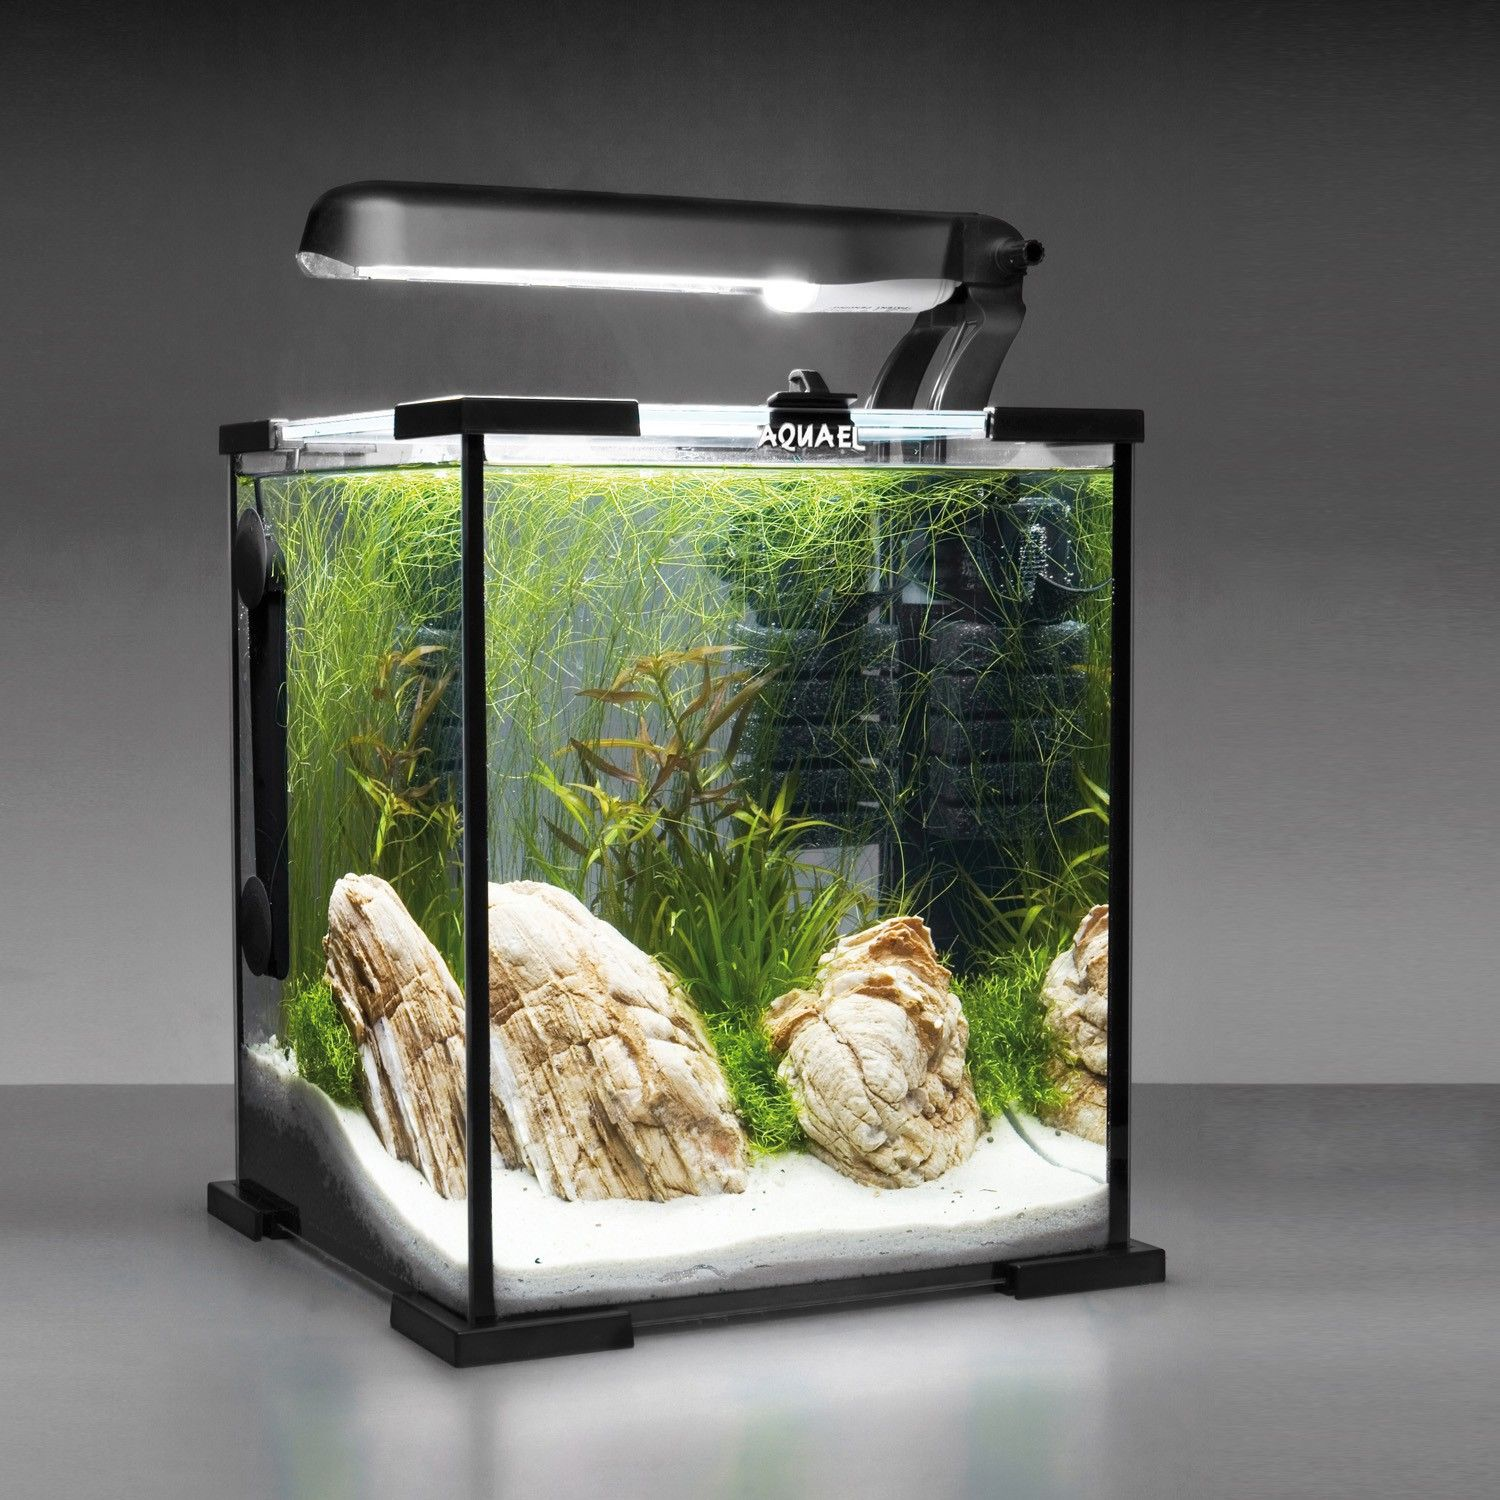 Hanako Koi 4460660 Aquael Shrimp Set Garnelen Aqua545f5daa8adec Jpg 1500 1500 Aquarium Avec Meuble Aquarium Idee Couleur Salon